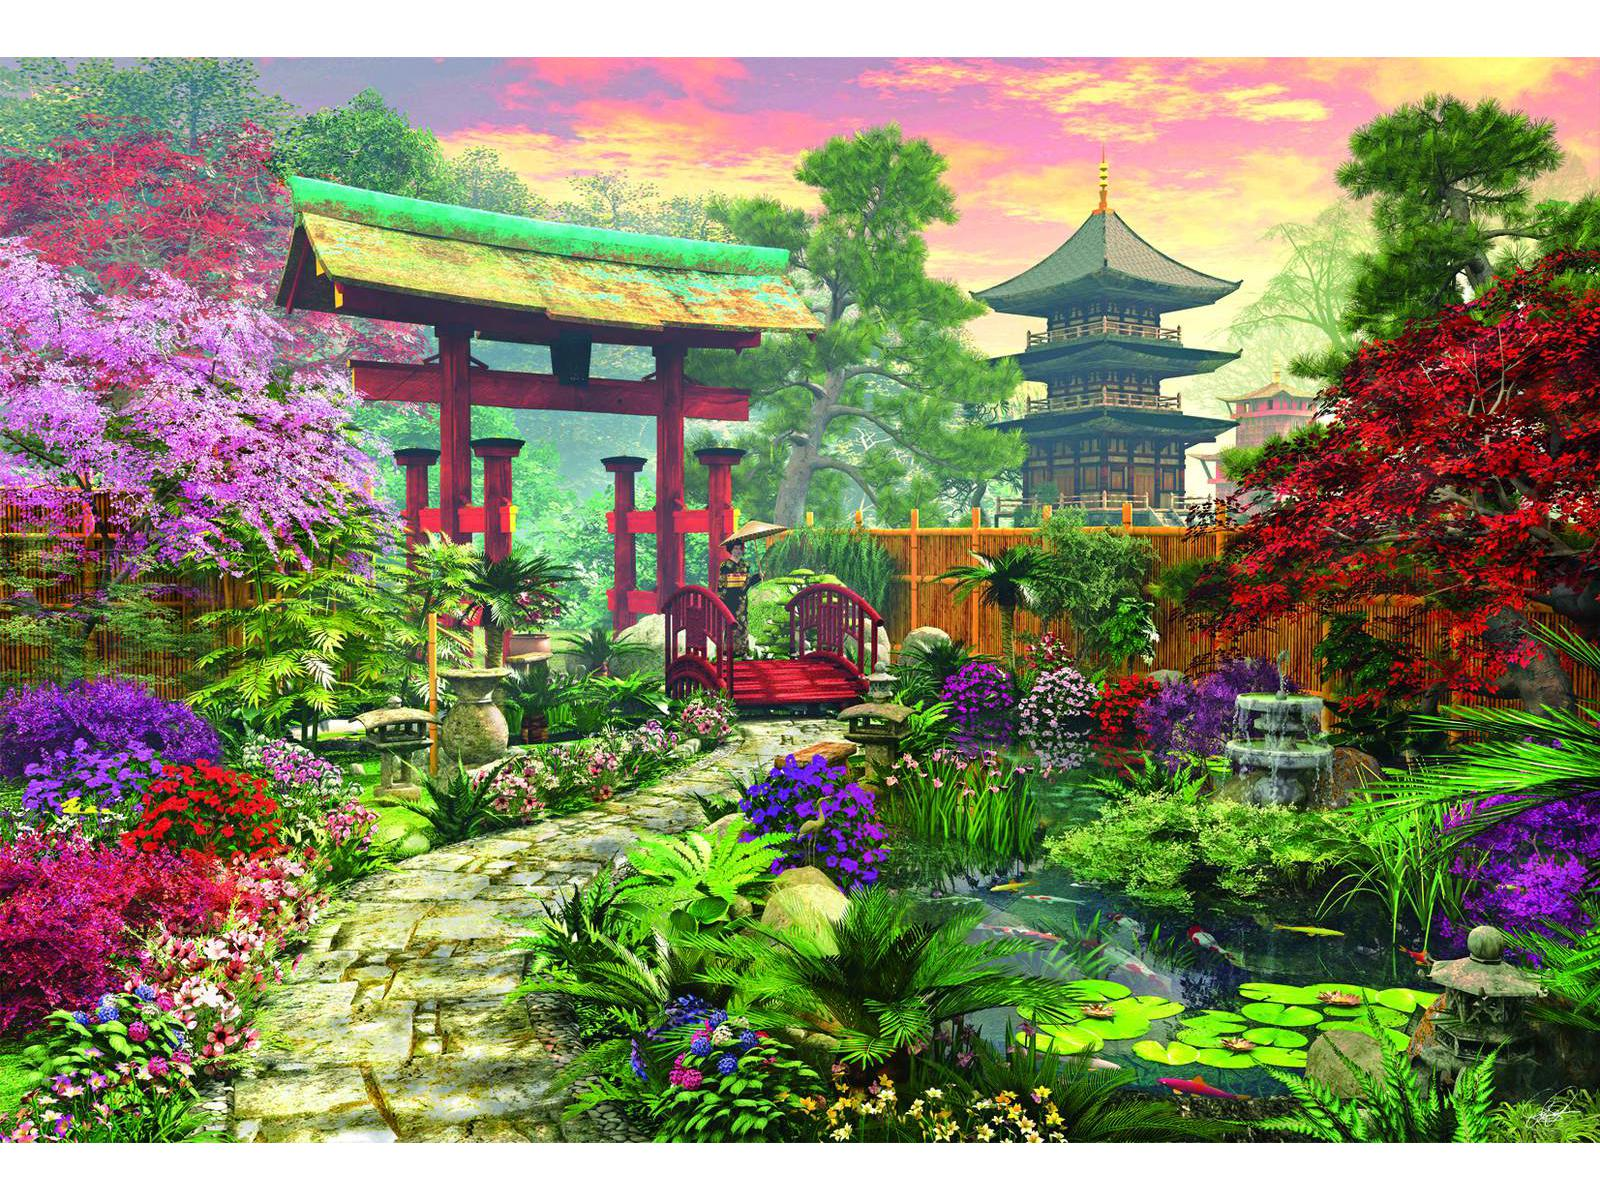 puzzle jardin japonais educa 16019 3000 pi ces puzzles for ts fleurs et jardins planet 39 puzzles. Black Bedroom Furniture Sets. Home Design Ideas